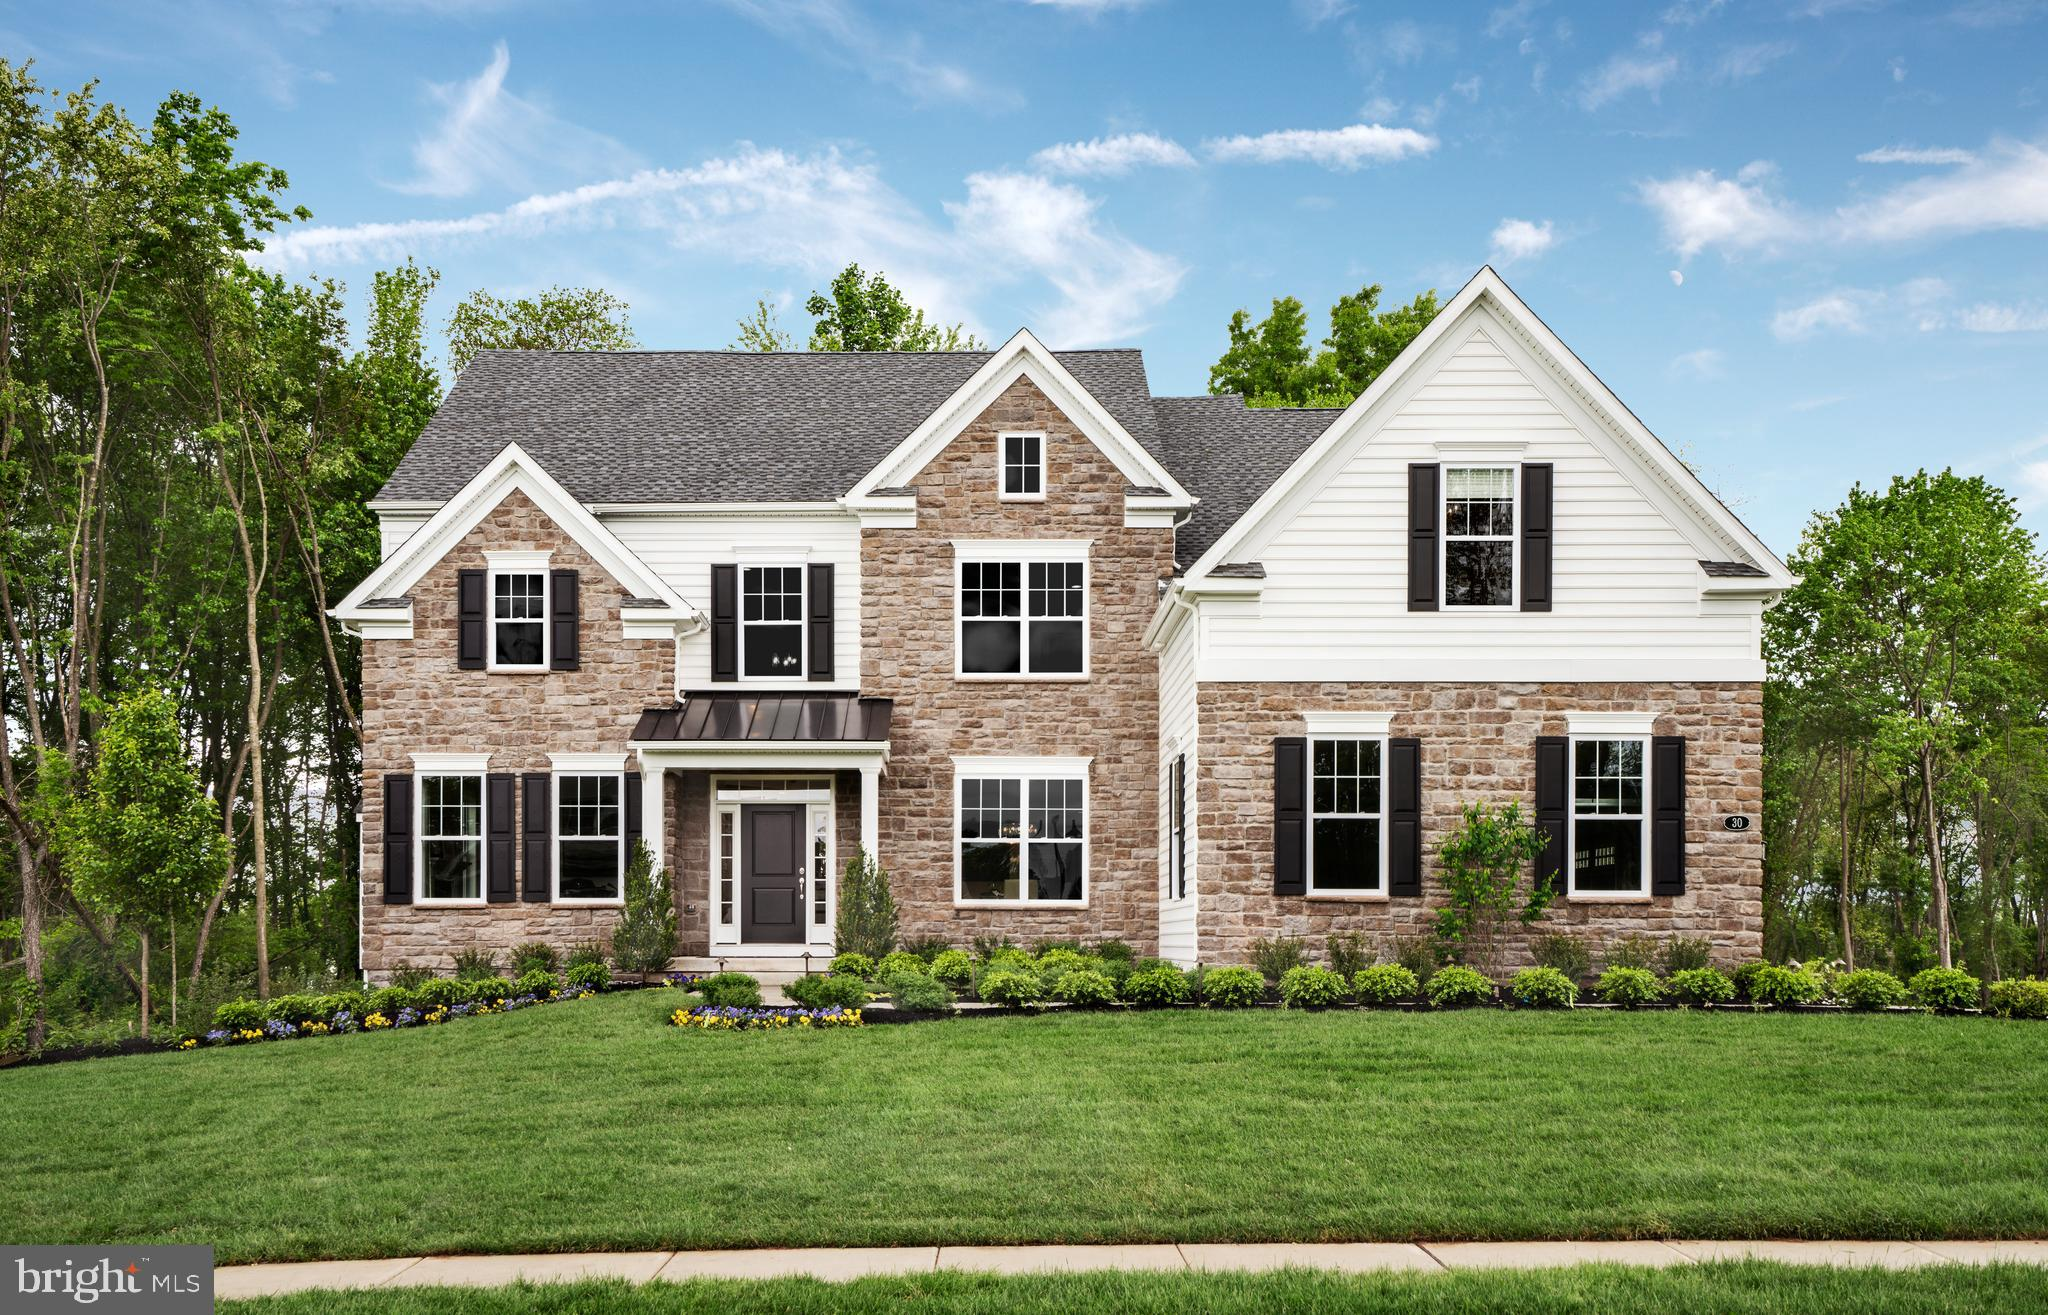 49 Starmont Way STARMONT WAY, COLLEGEVILLE, PA 19426